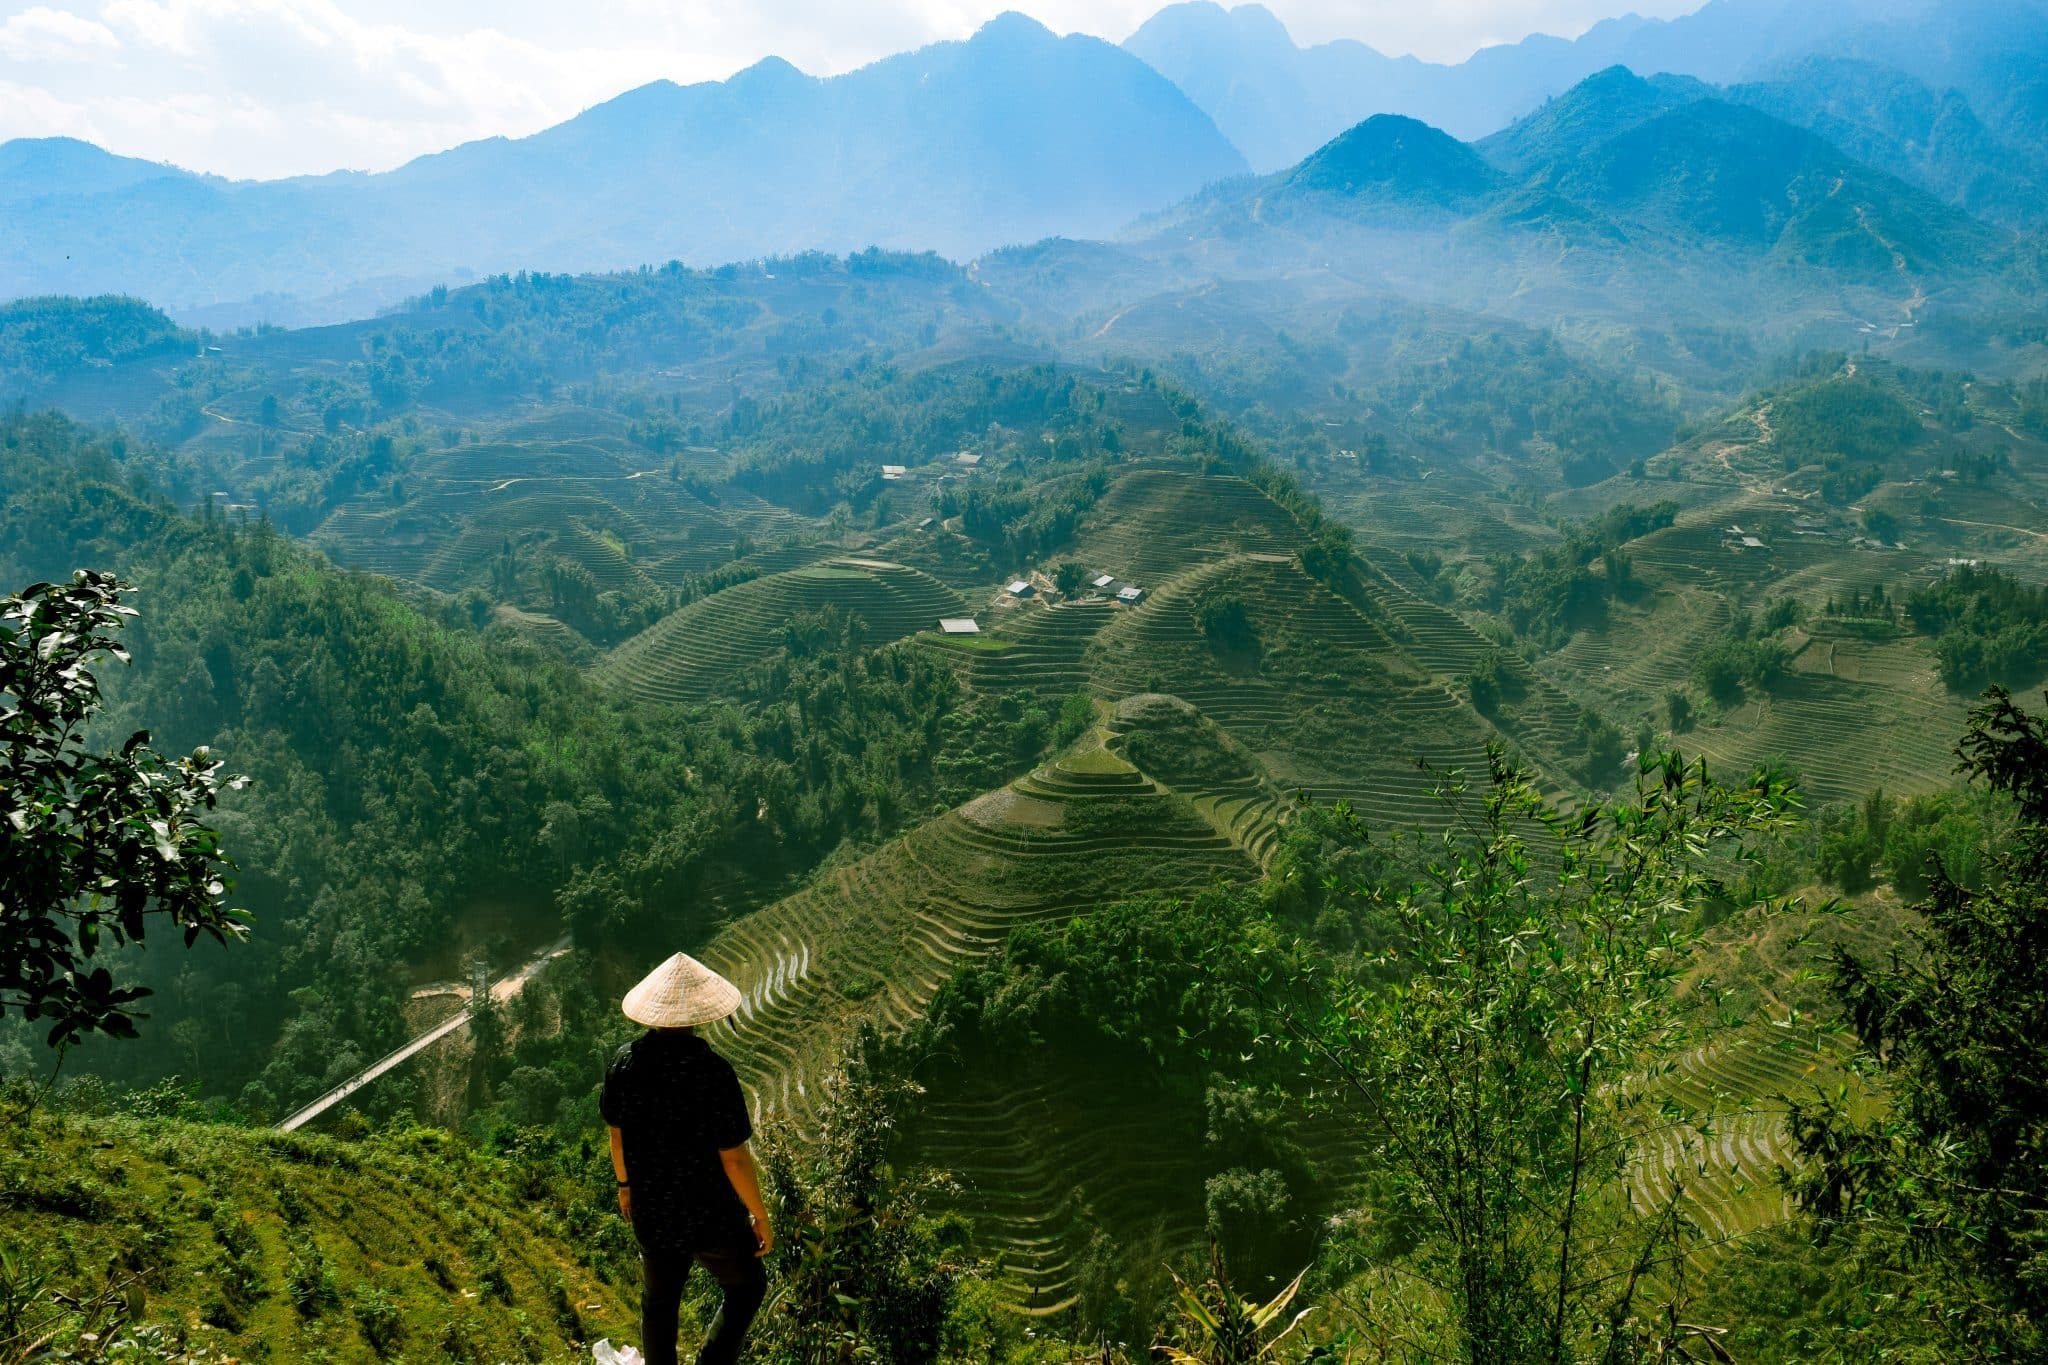 Sapa Trek, Trekking in Sapa, Sa Pa Vietnam, How to trek in Sa Pa, Things to do in Sa Pa, Tips for your trek in Sa Pa, great tips Sa Pa, Mooie trek in Sa Pa, How to trek in Sapa without a guide